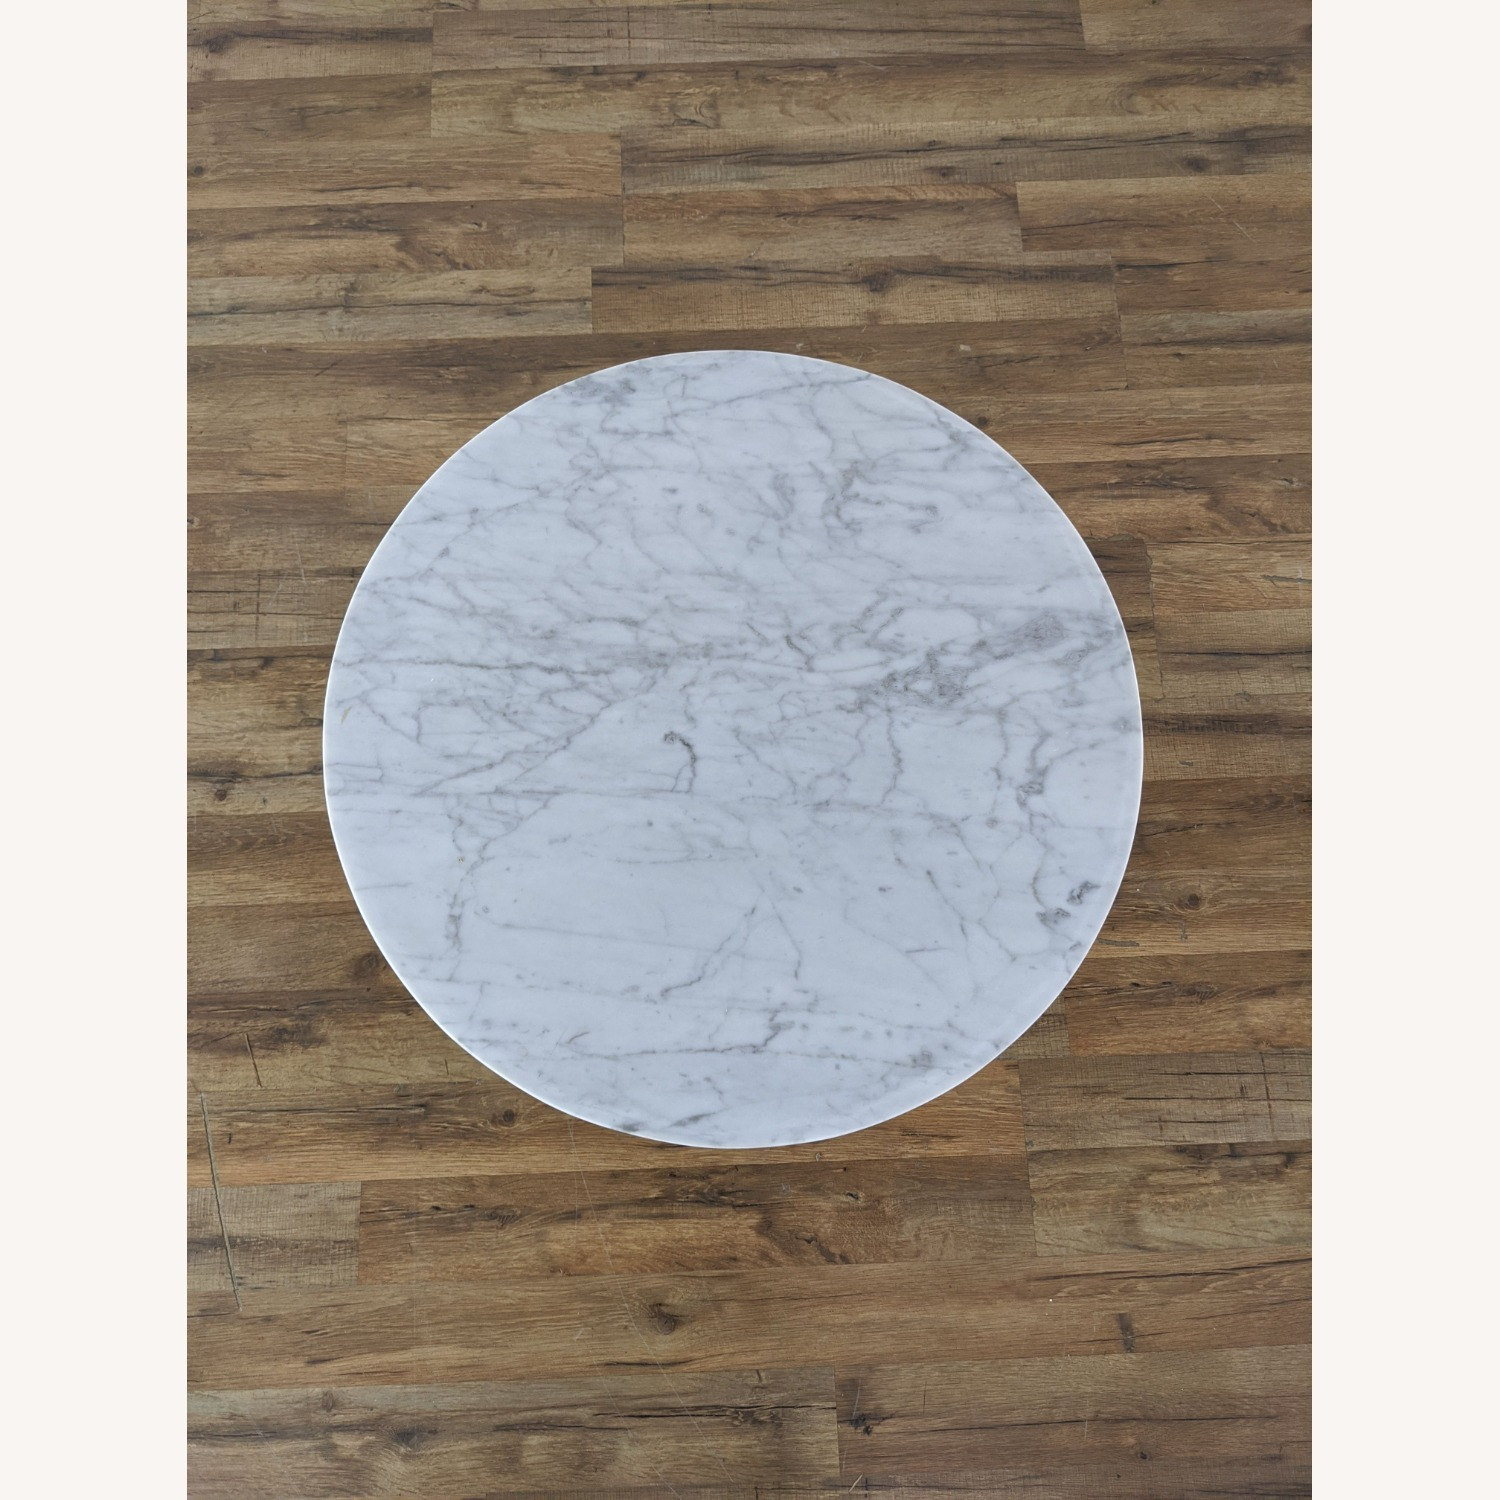 West Elm Marble Topped Pedestal End Table - image-7